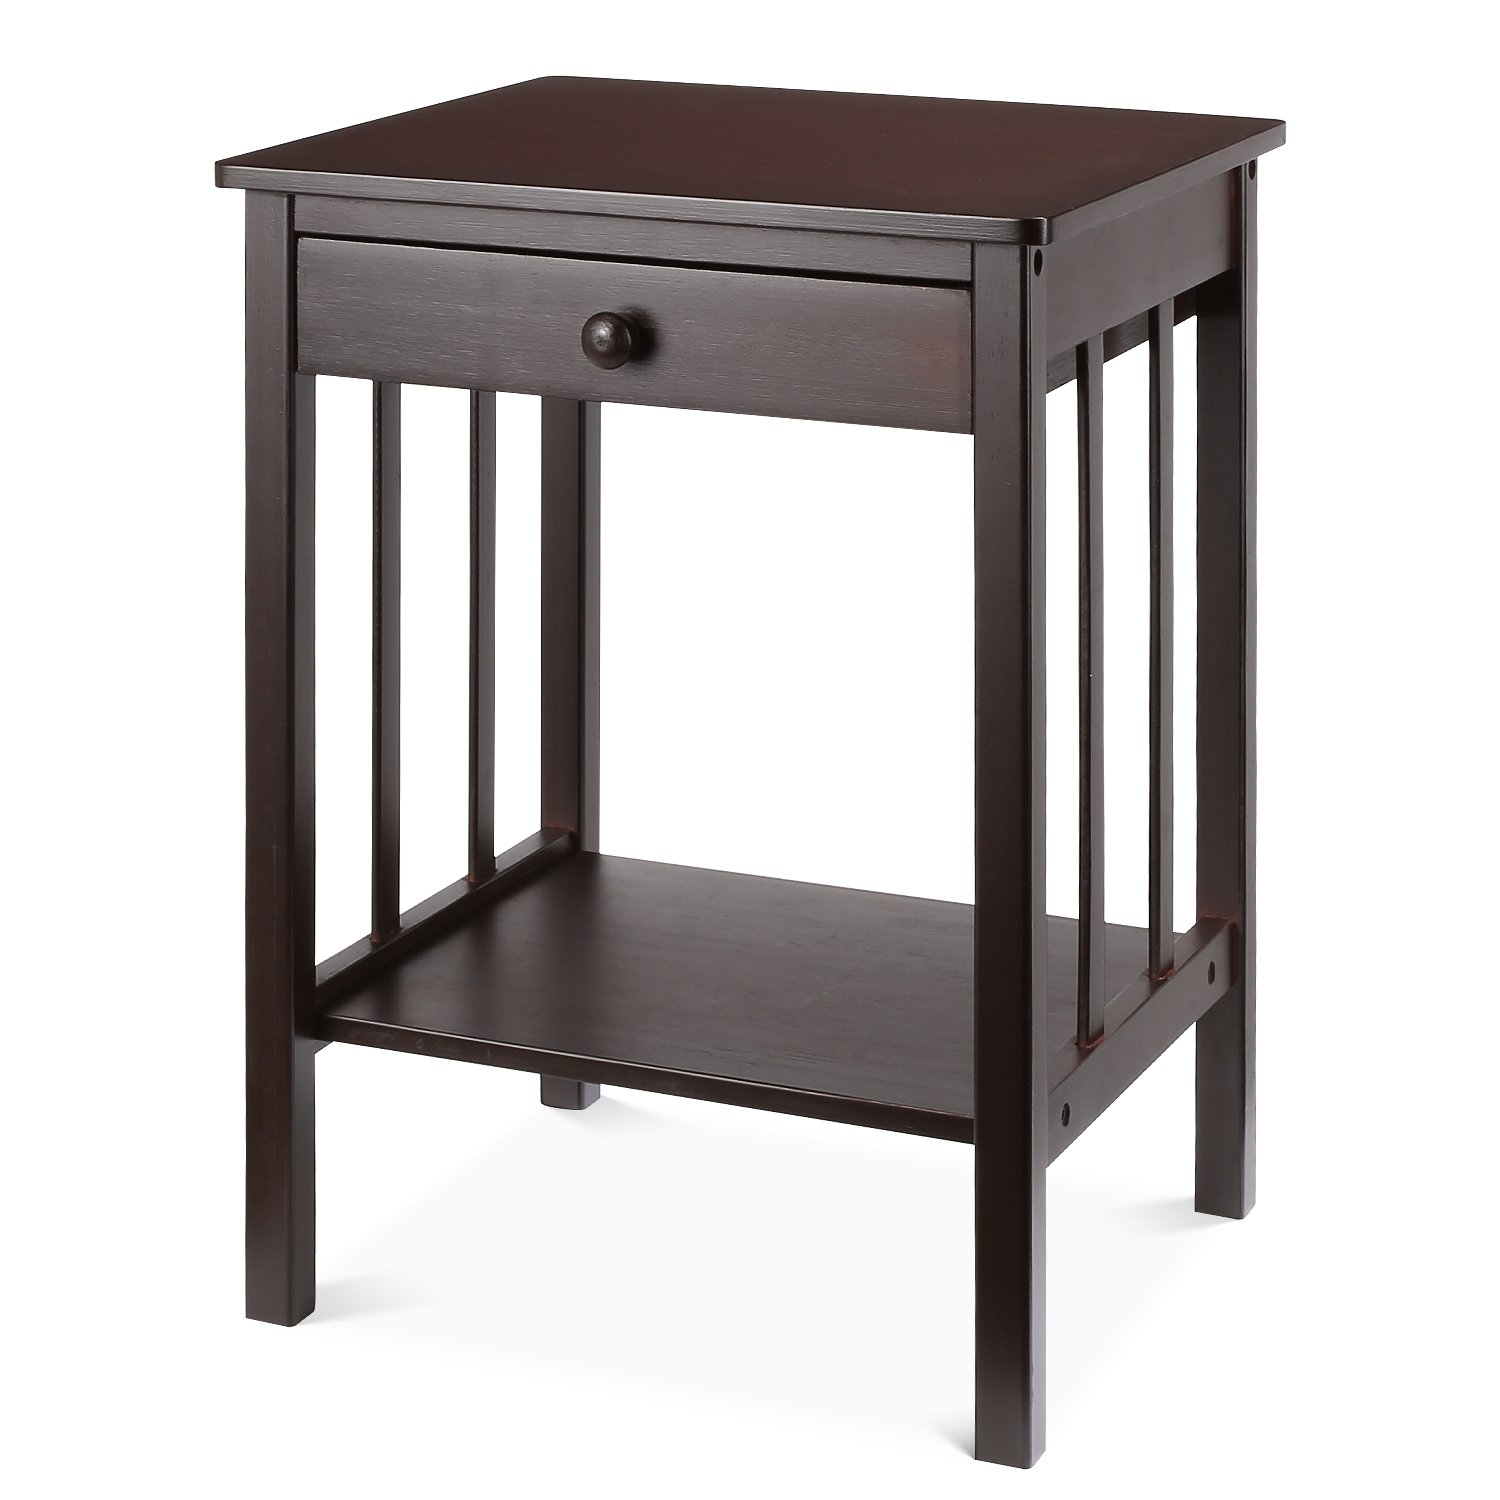 Homfa Bamboo Night Stand End Table with Drawer and Storage Shelf Multipurpose Home Furniture, Dark Brown by Homfa